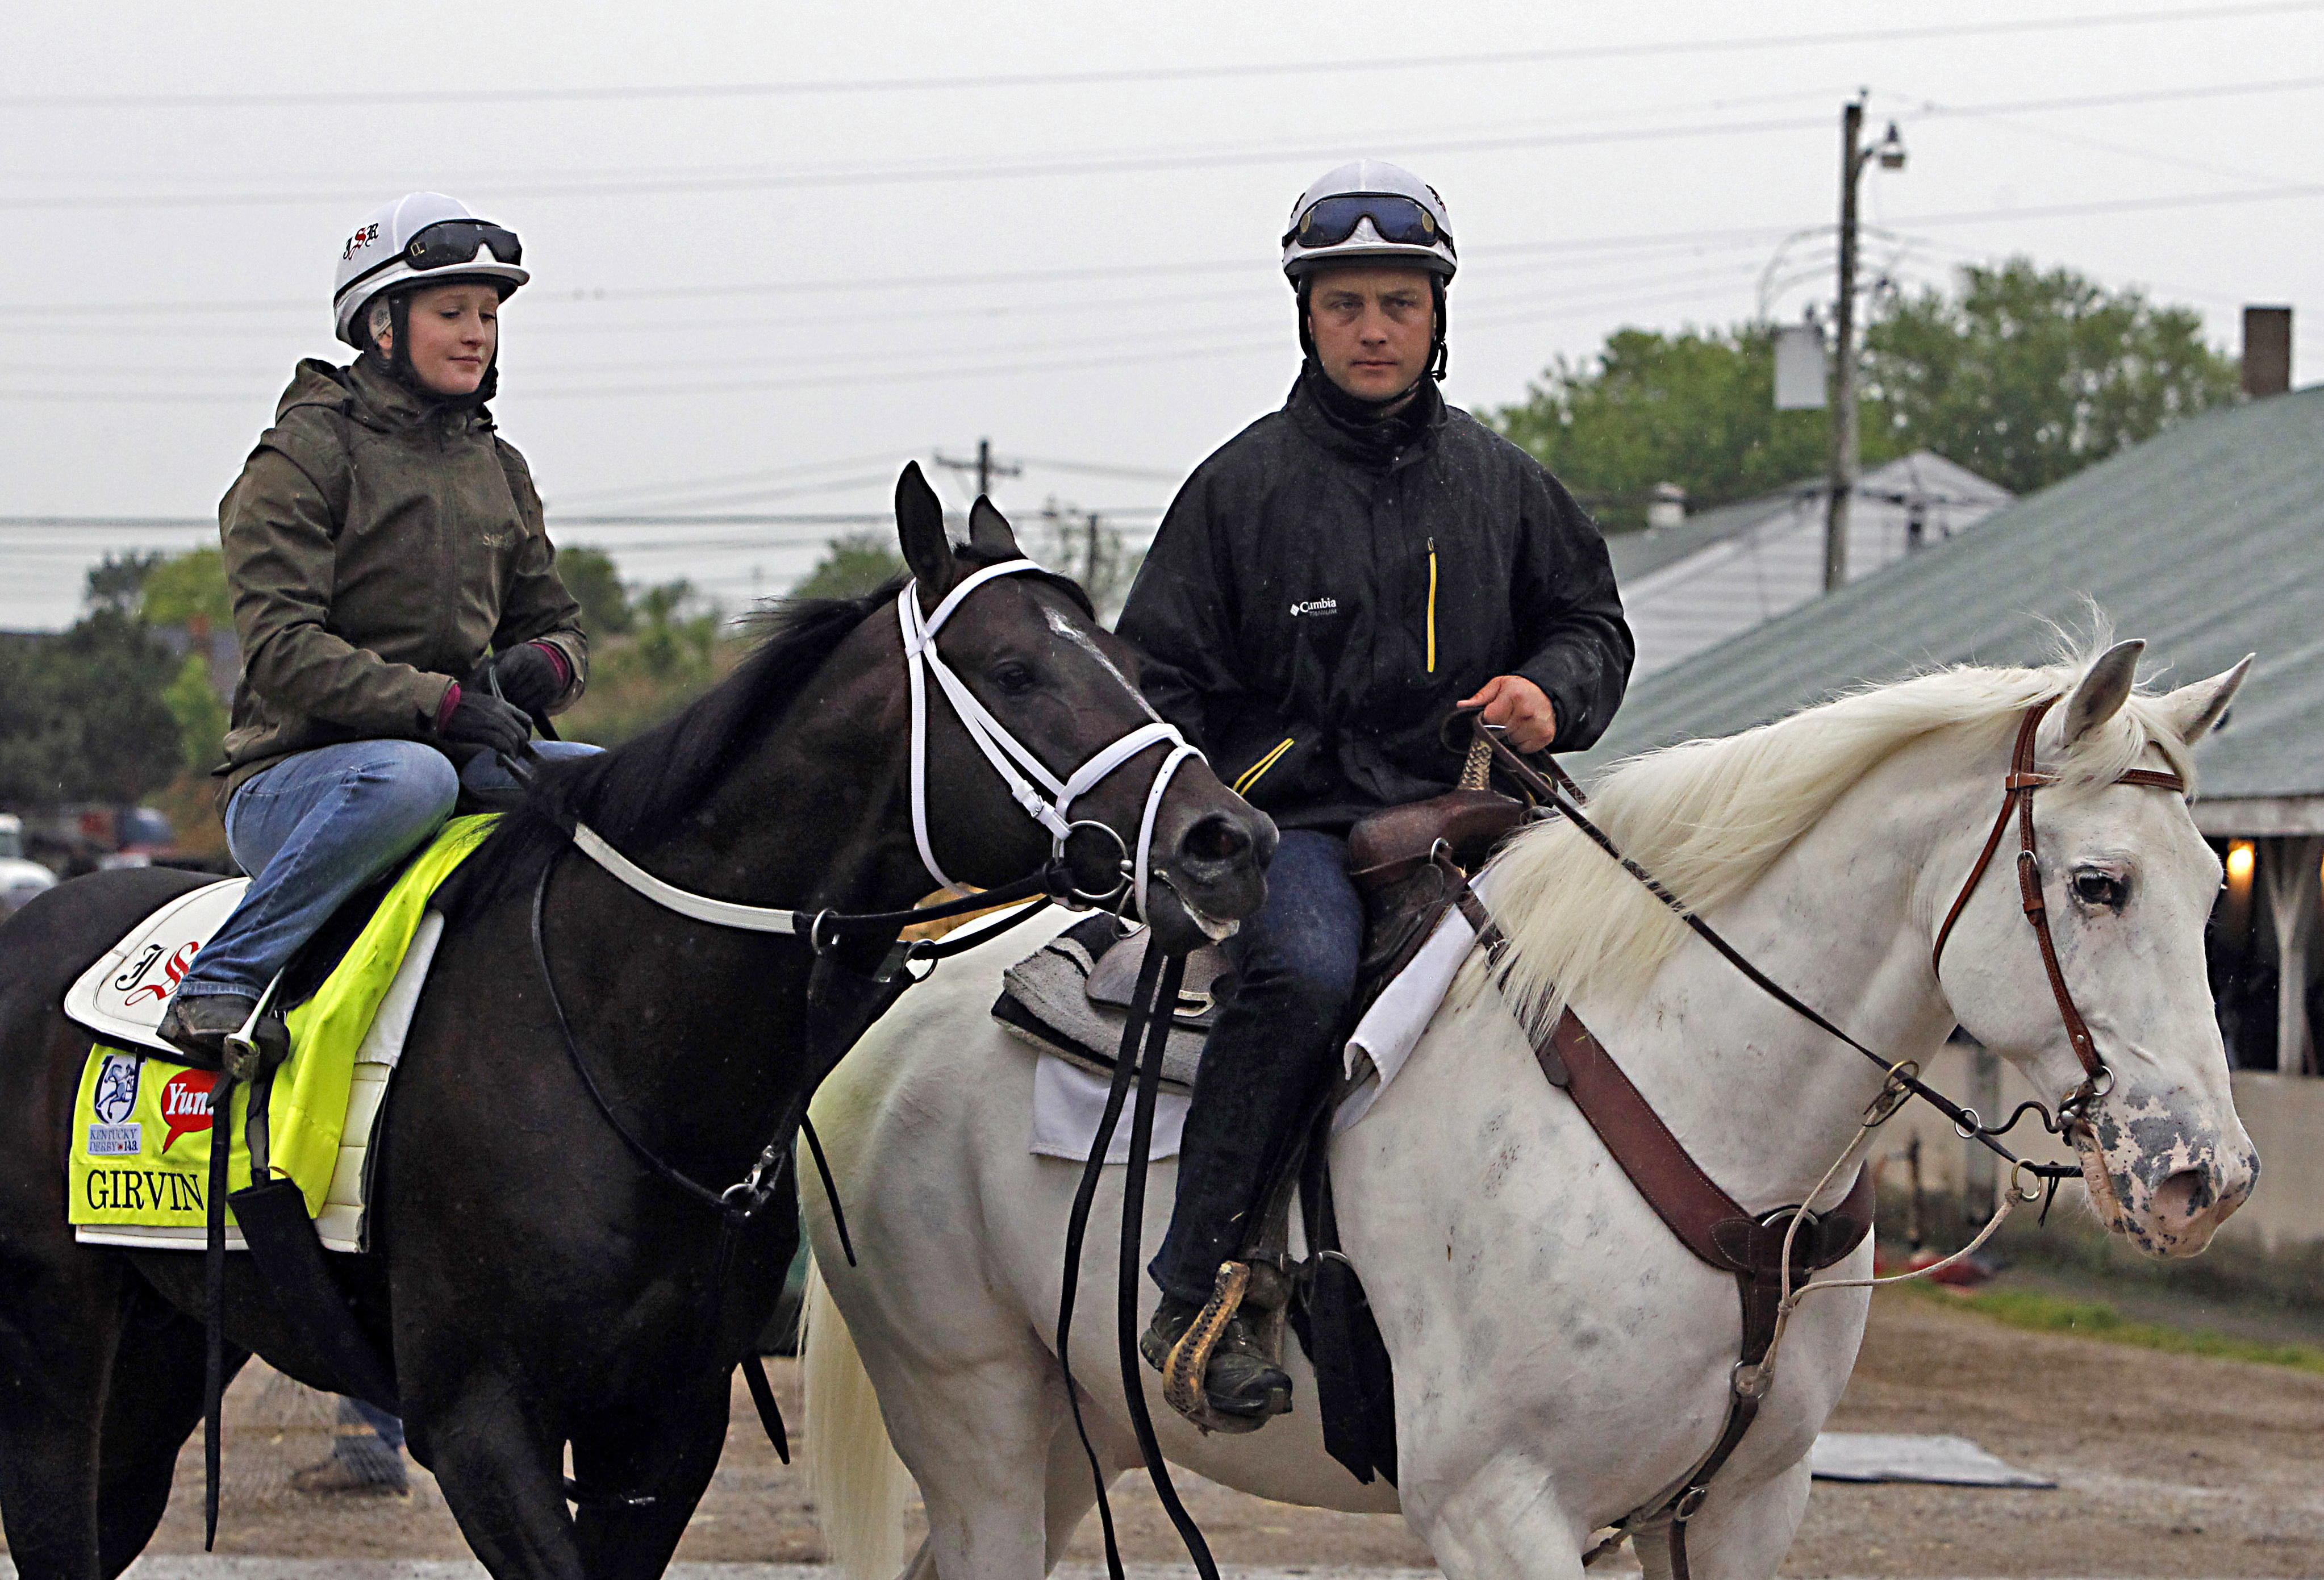 Trainer Joe Sharp, right, leads Kentucky Derby entrant Girvin, left, ridden by his wife Rosie Napravnik, a former jockey, back to Barn 33 following a morning gallop at Churchill Downs in Louisville, Ky., Thursday, May 4, 2017. (AP Photo/Garry Jones)